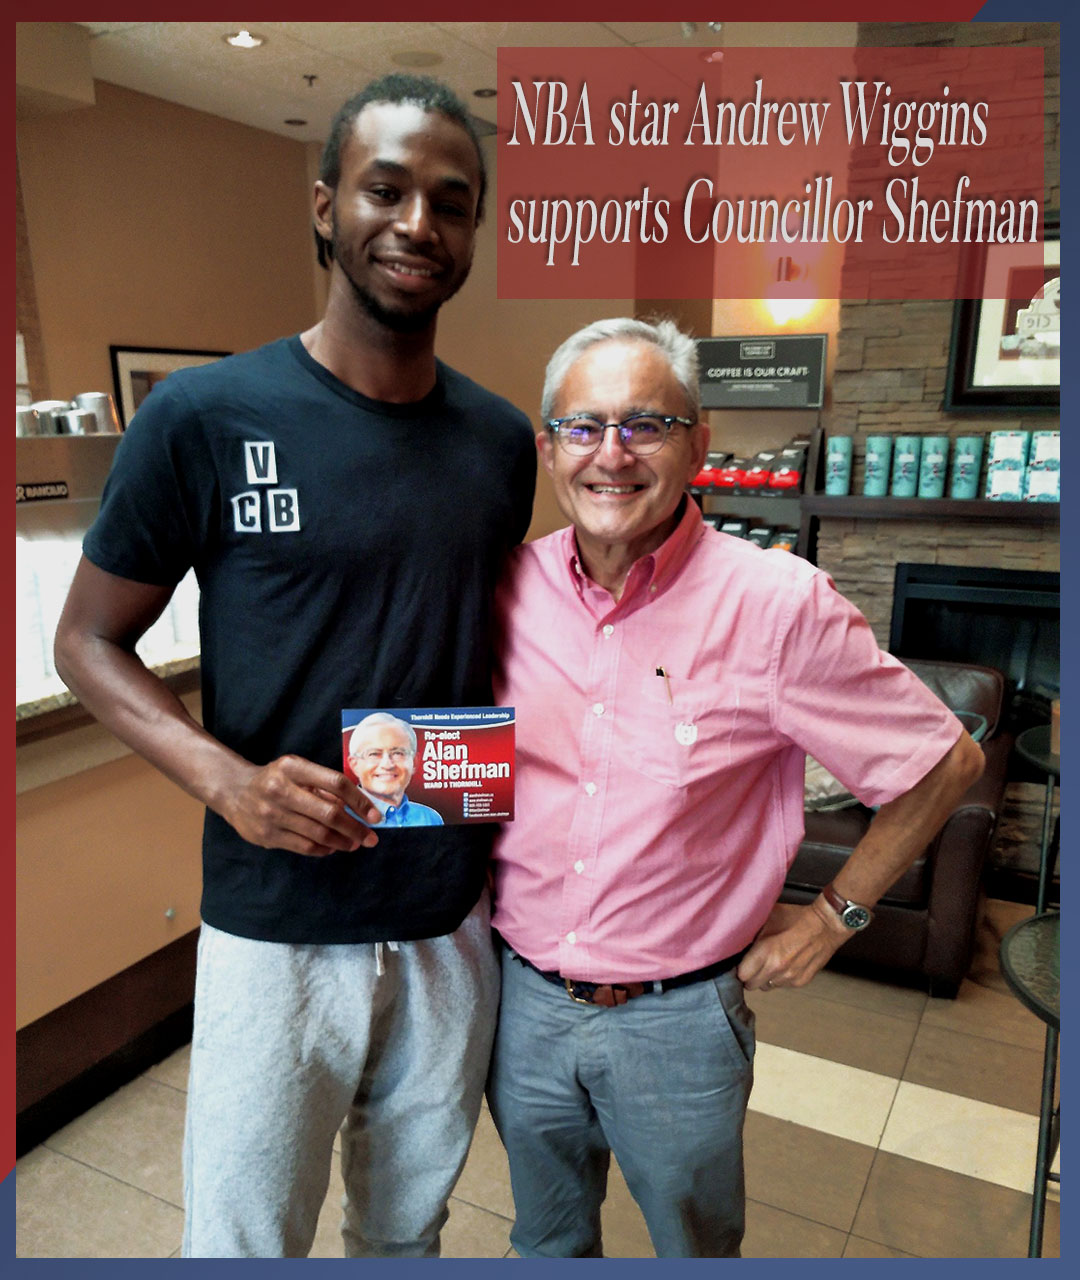 Andrew Wiggins supports Councillor Alan Shefman